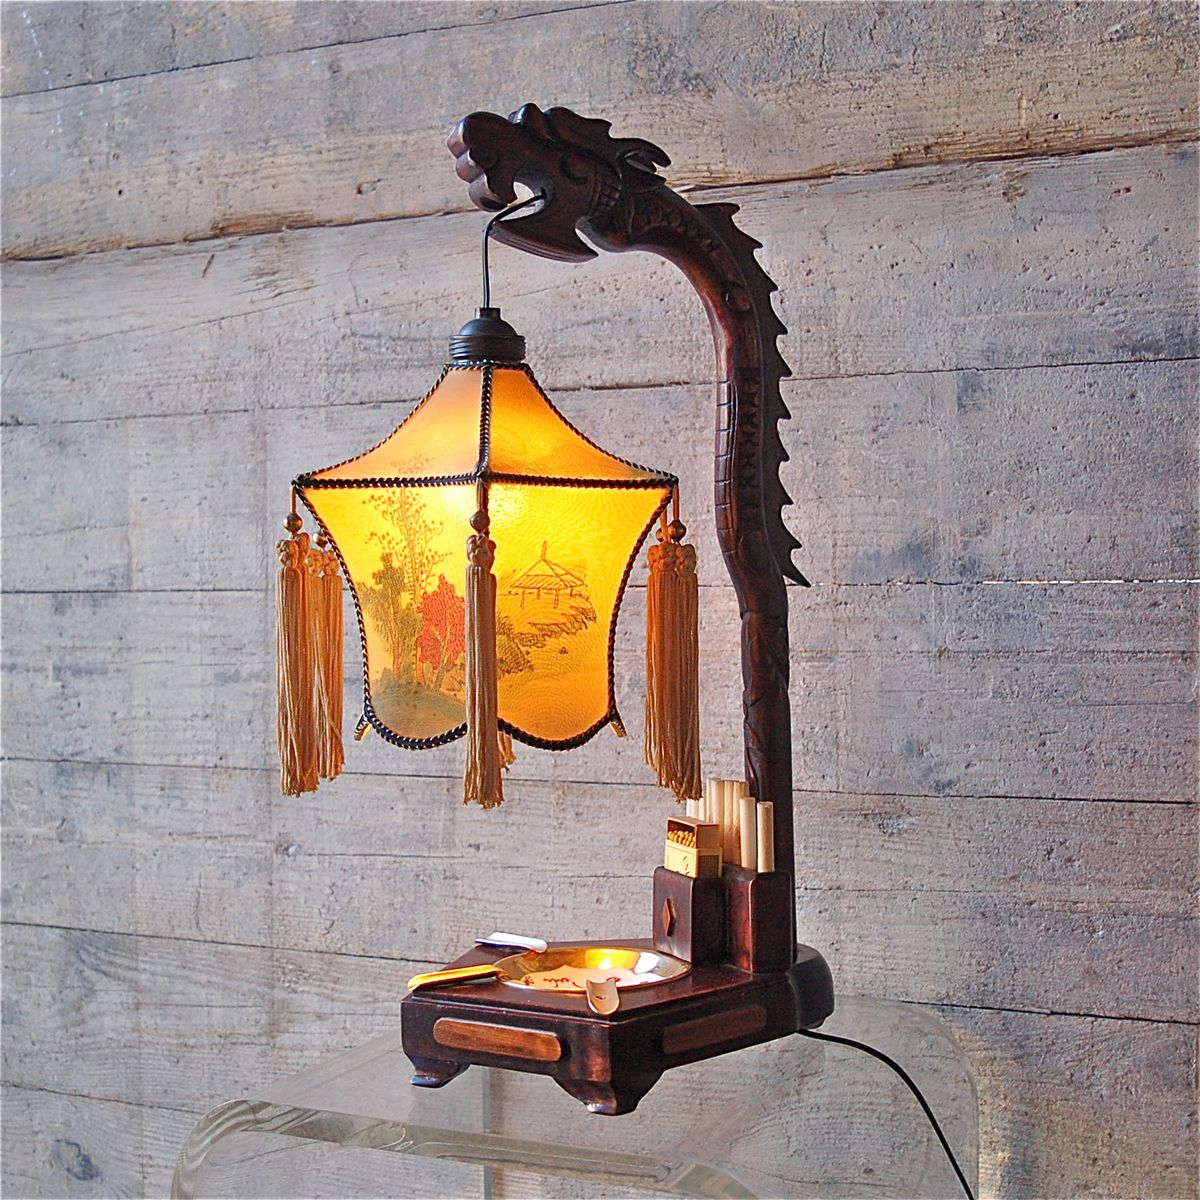 Chinese dragon table lamp with ashtray and cigarette holder 1920s chinese dragon table lamp with ashtray and cigarette holder 1920s aloadofball Choice Image